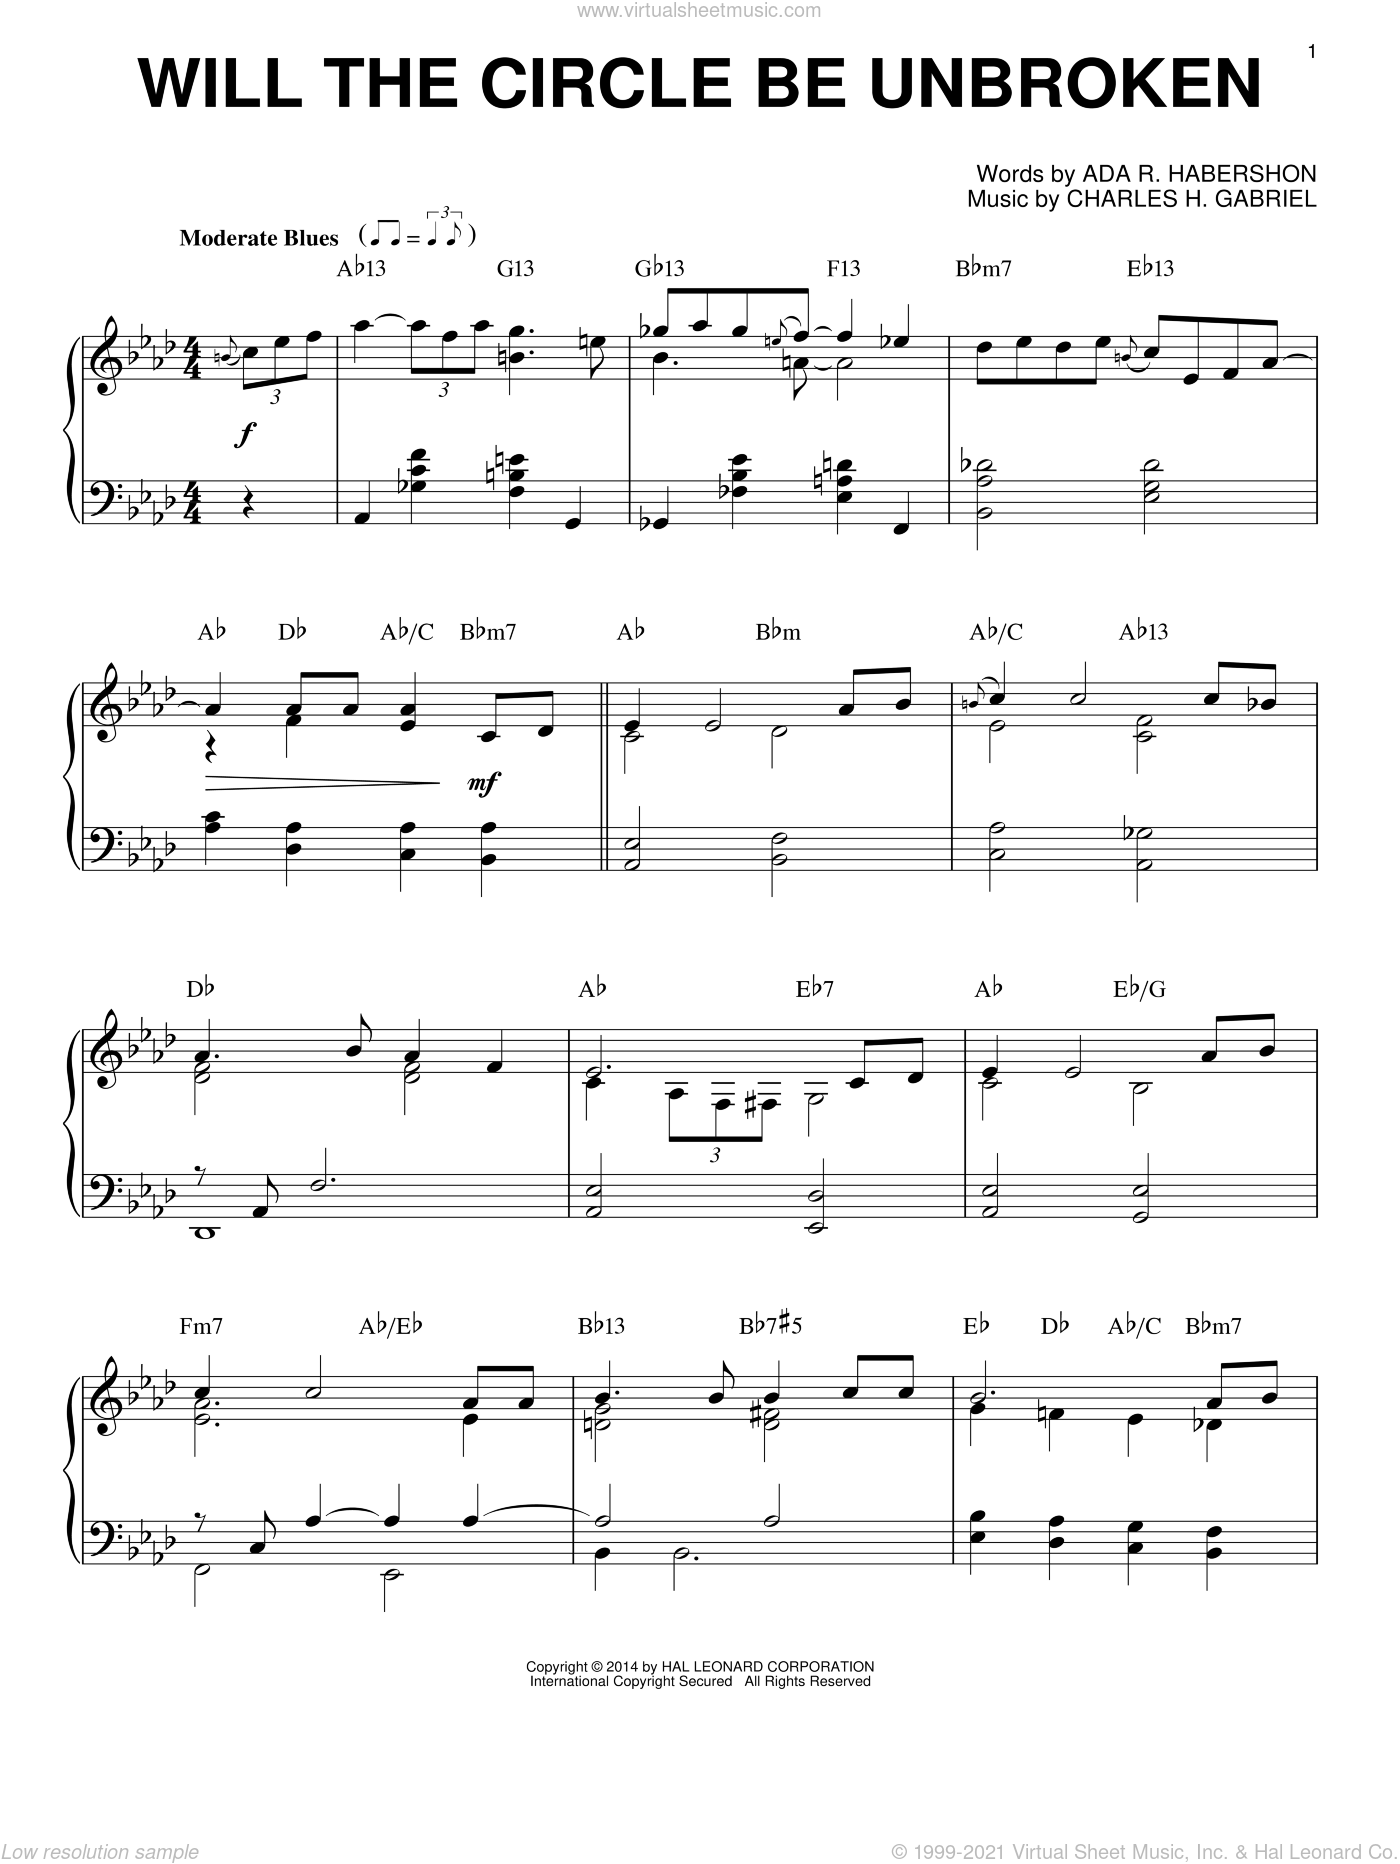 Will The Circle Be Unbroken [Jazz version] sheet music for piano solo by Charles H. Gabriel and Ada R. Habershon, intermediate skill level